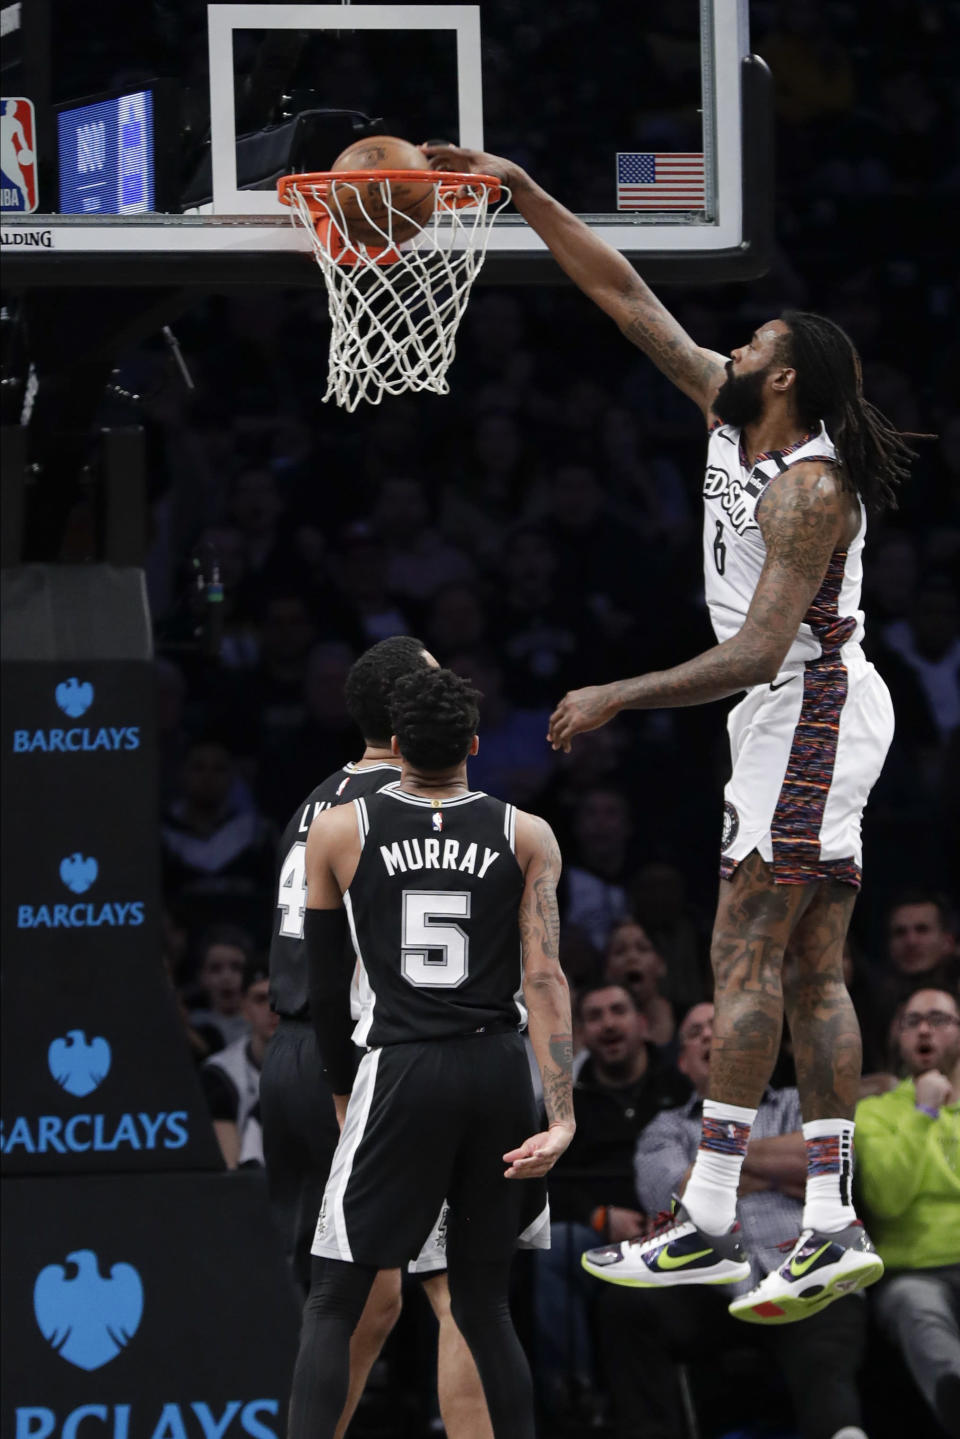 Brooklyn Nets' DeAndre Jordan (6) dunks the ball in front of San Antonio Spurs' Derrick White (4) and Dejounte Murray (5) during the first half of an NBA basketball game Friday, March 6, 2020, in New York. (AP Photo/Frank Franklin II)